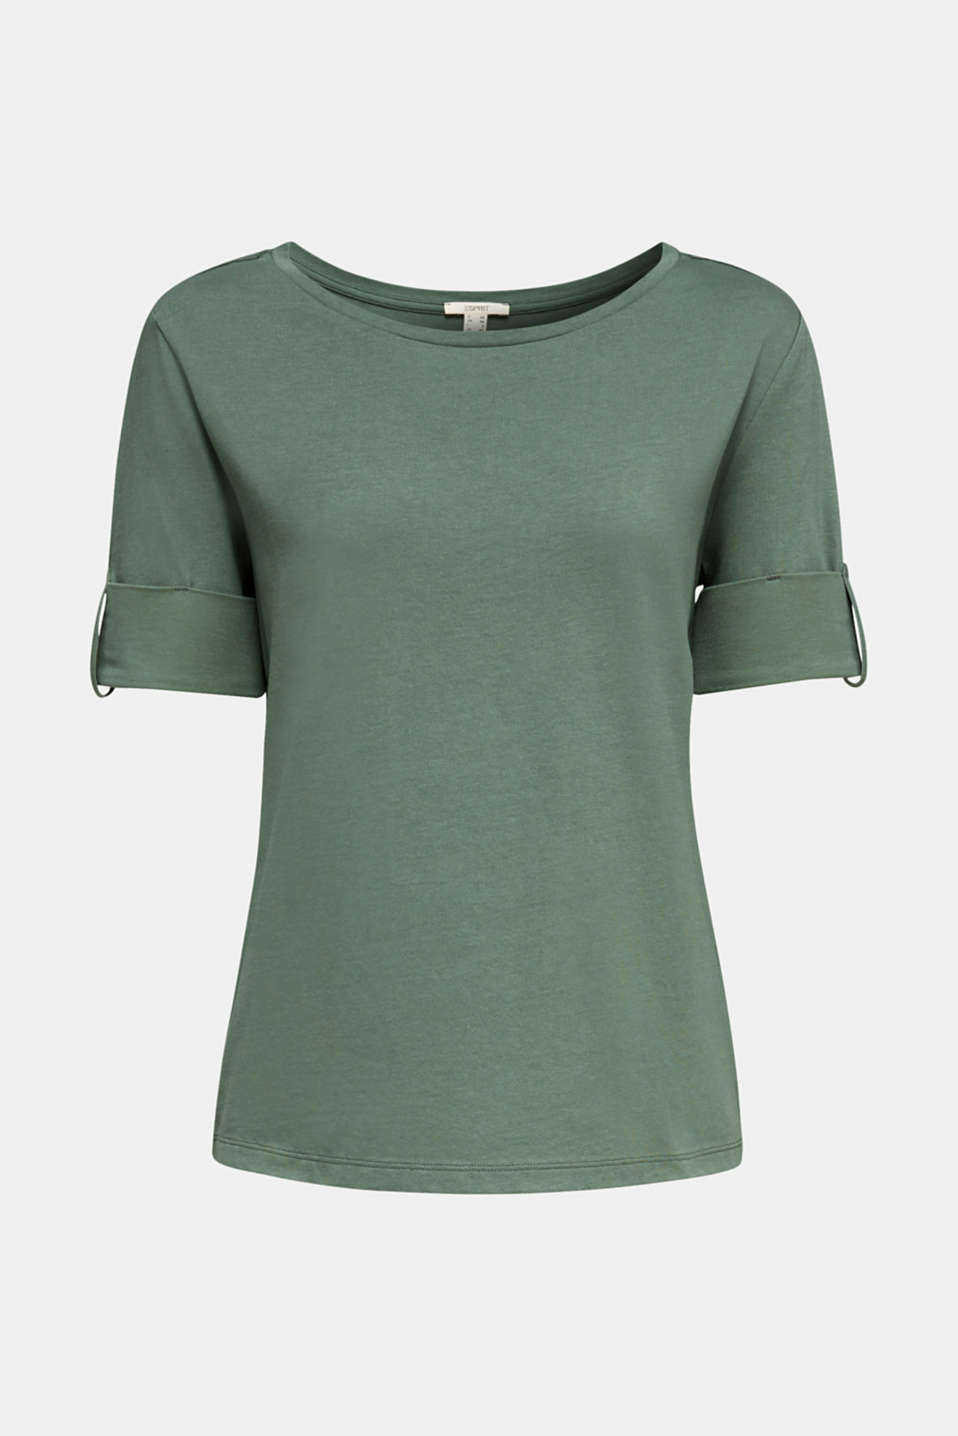 T-shirt with turn-up sleeves, KHAKI GREEN, detail image number 6